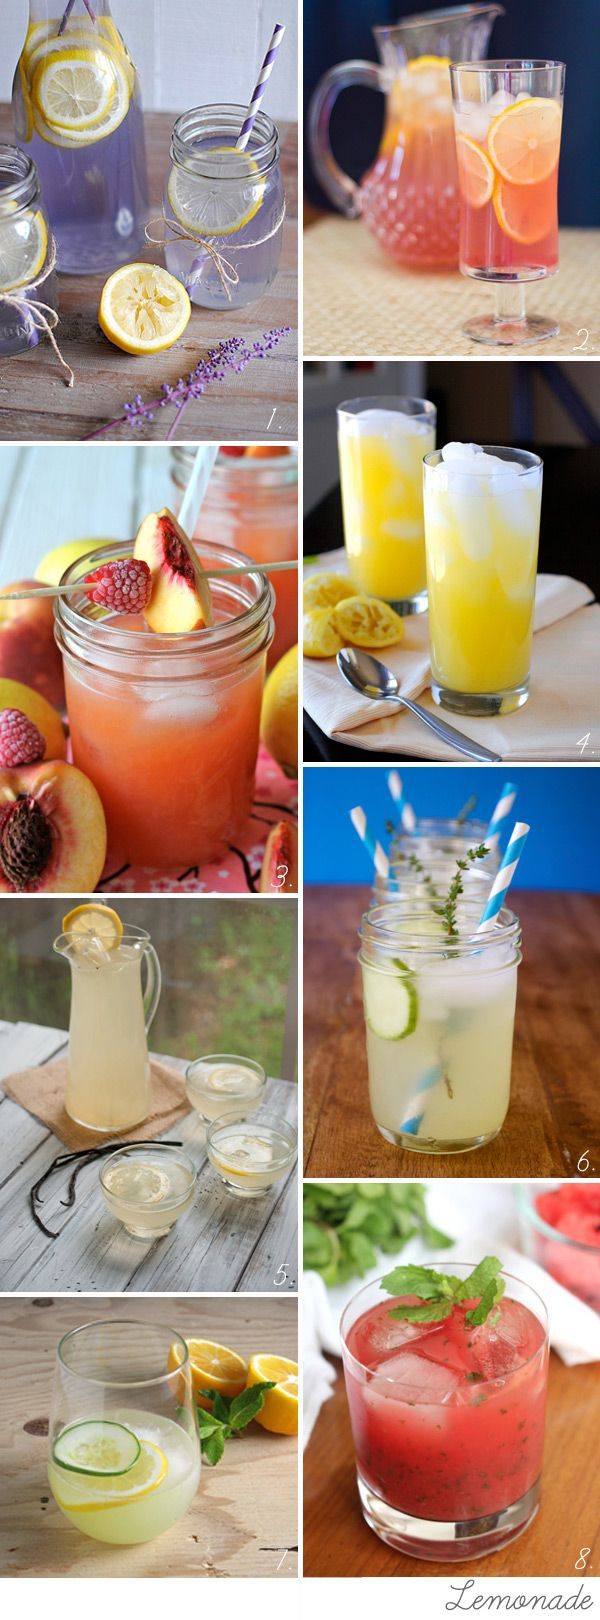 Lemonade and homemade refreshers  non-alcoholic cocktails-don't want alcohol at the wedding, but I do want lots of different drinks!